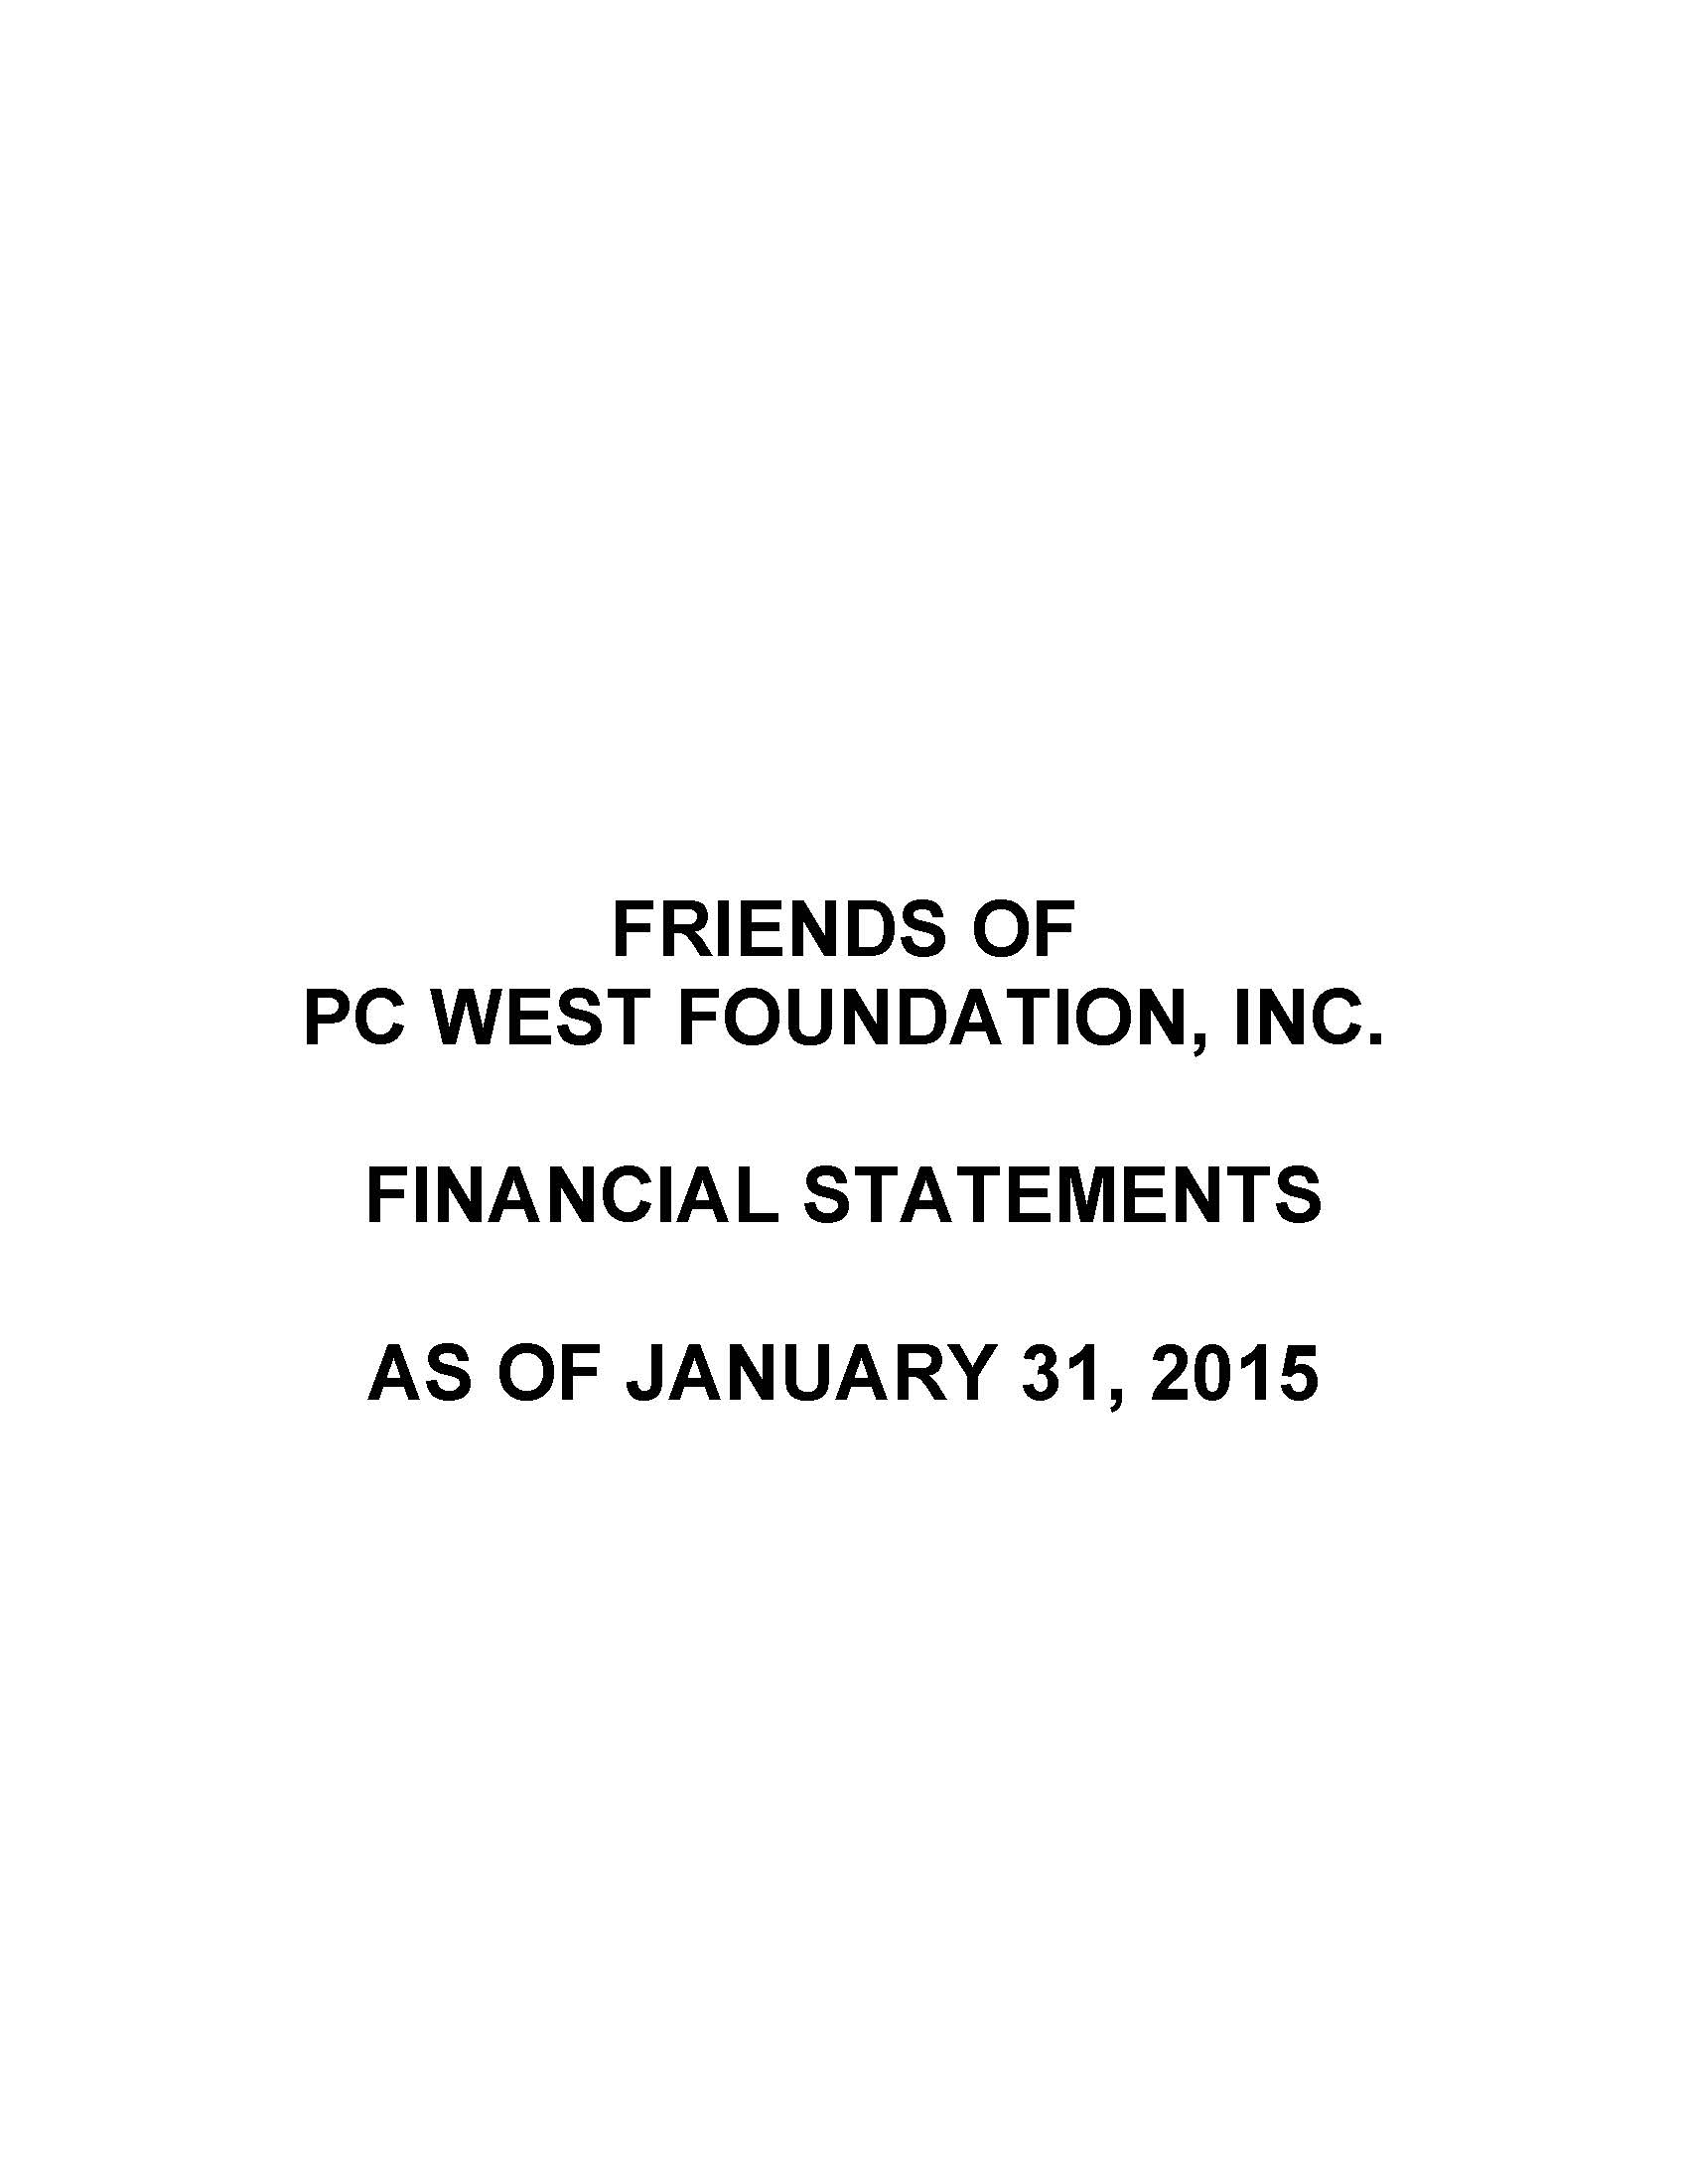 2015-01-31_Friends_of_PCW_Financial_Statements_Page_1.jpg